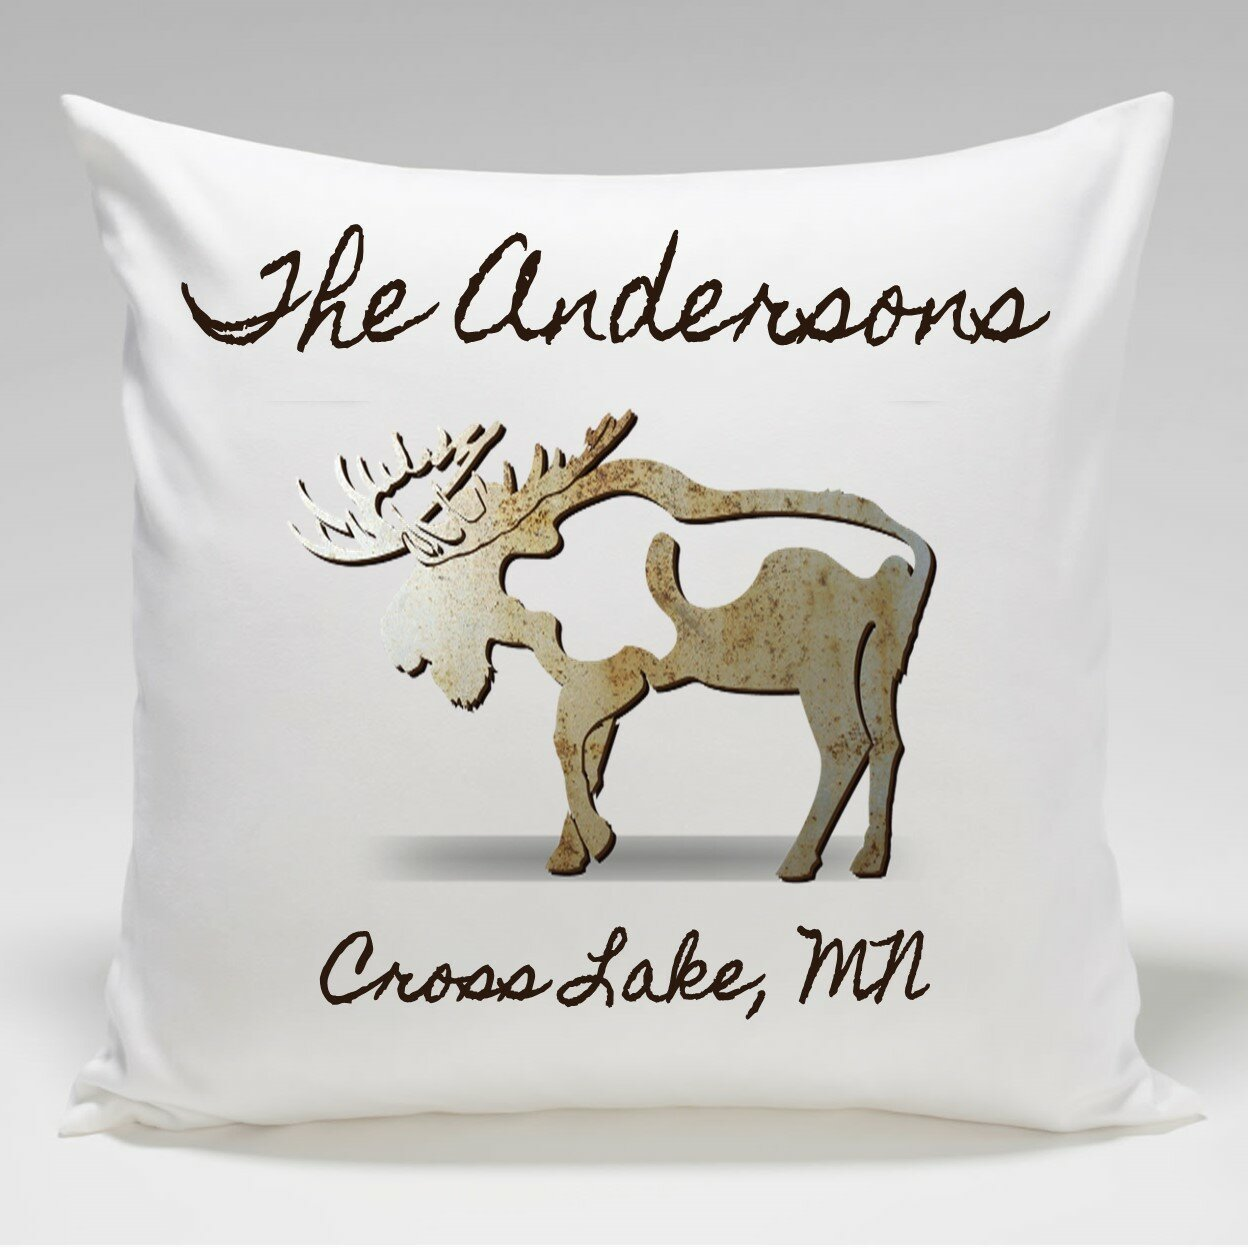 Jds Personalized Gifts Personalized Cabin Moose Throw Pillow Wayfair